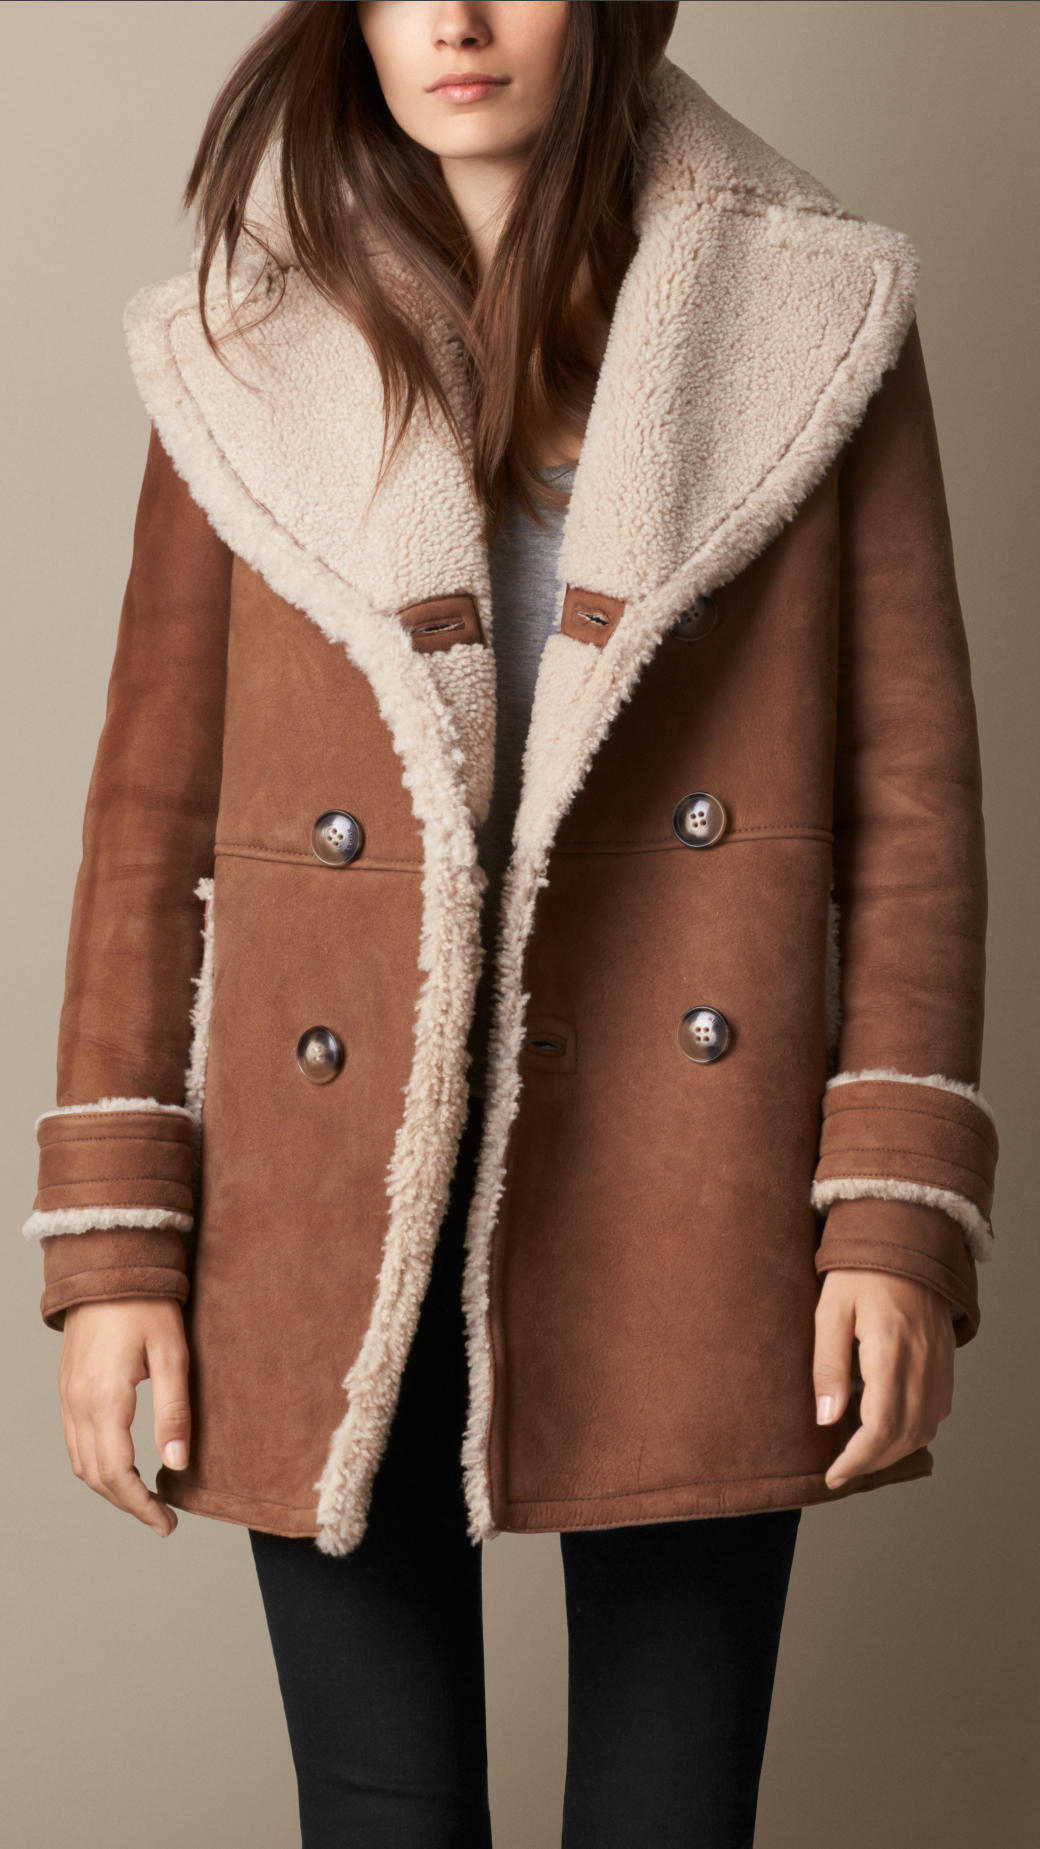 Burberry A-Line Shearling Coat in Brown | Lyst